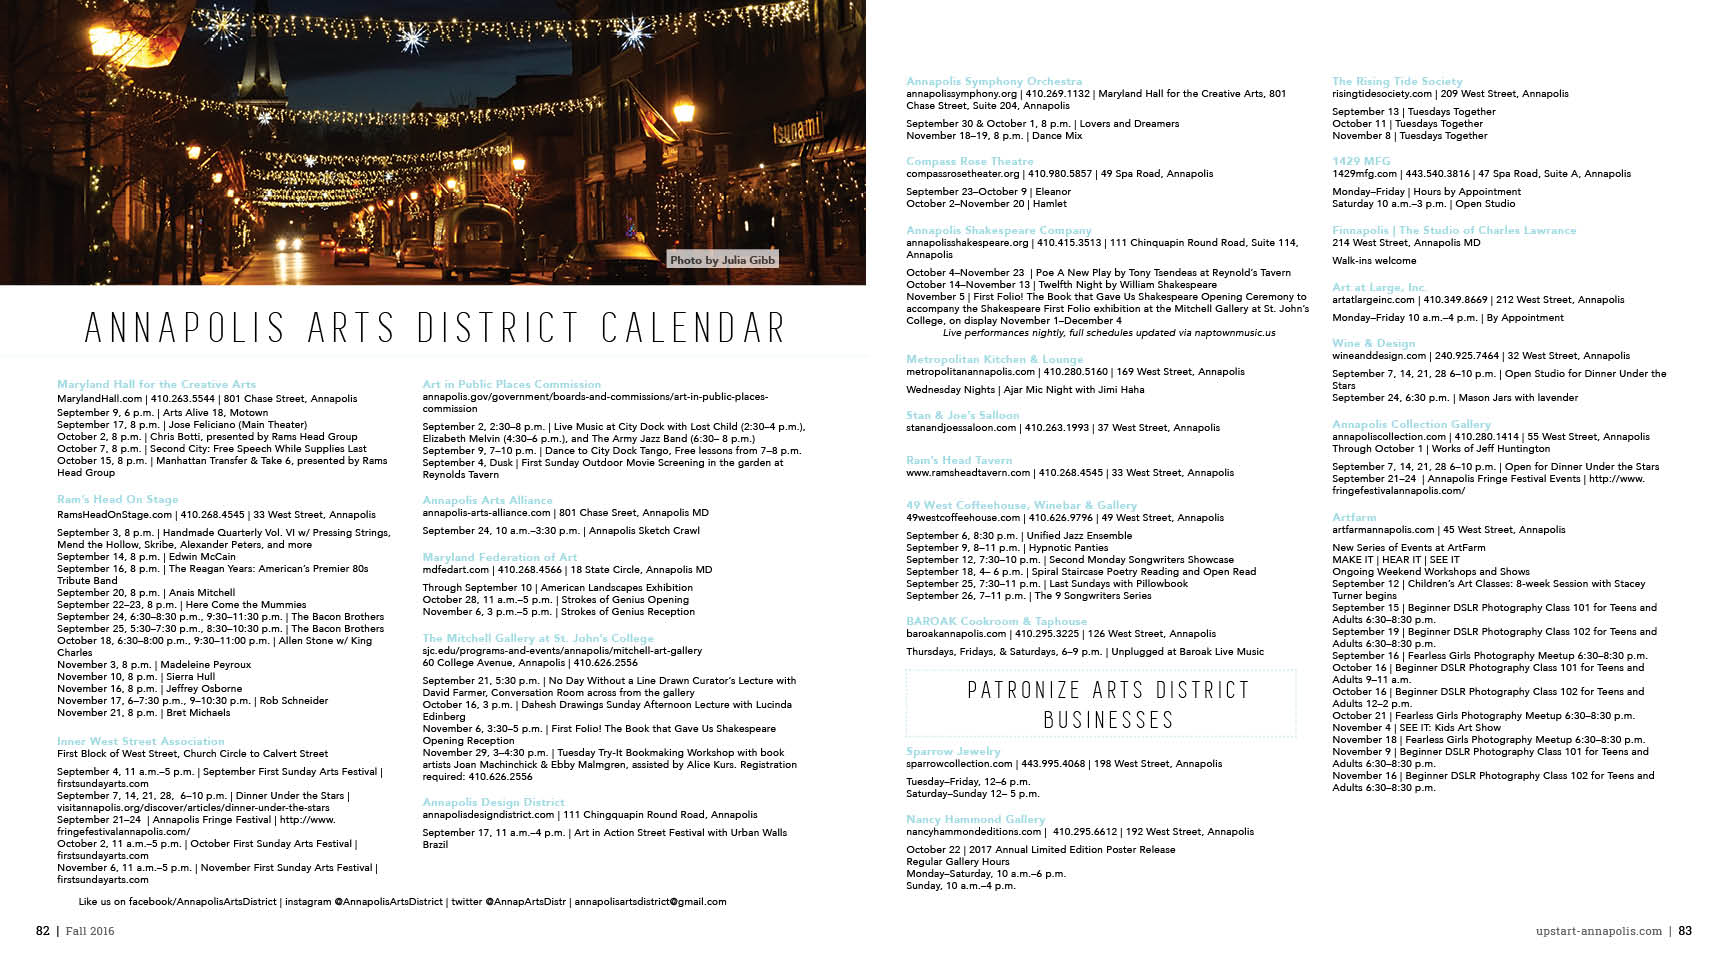 annapolis-arts-district-calendar